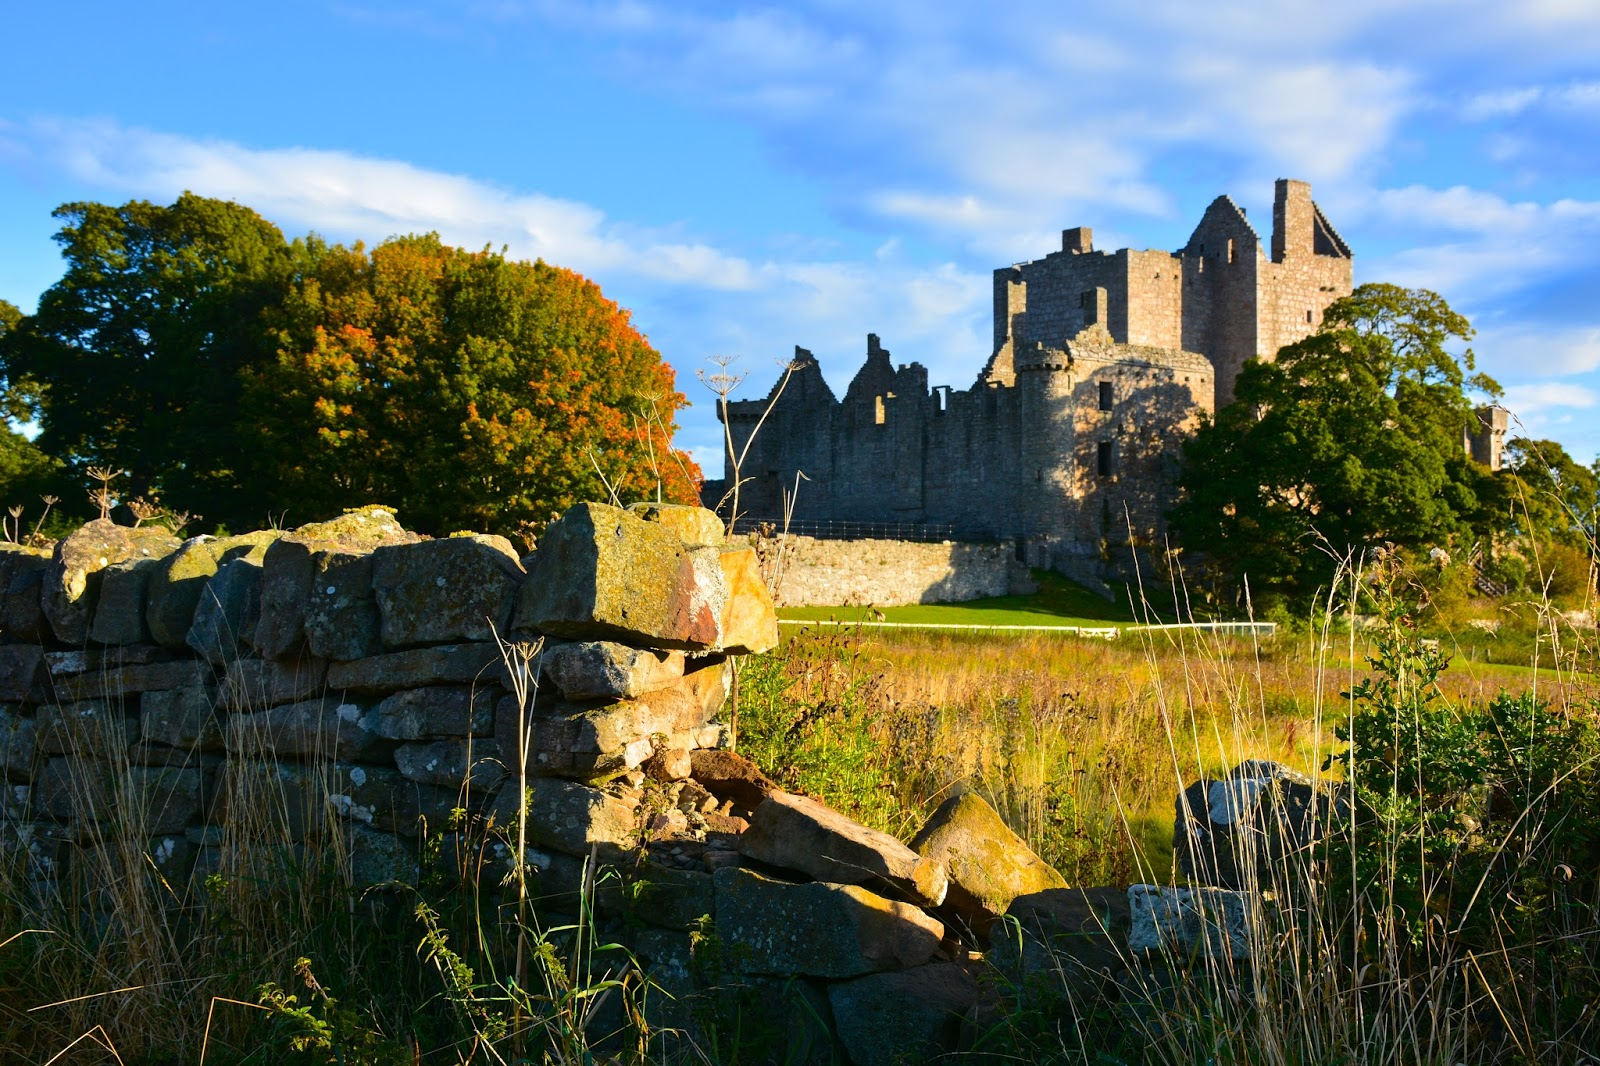 autumn colors around Craigmillar Castle